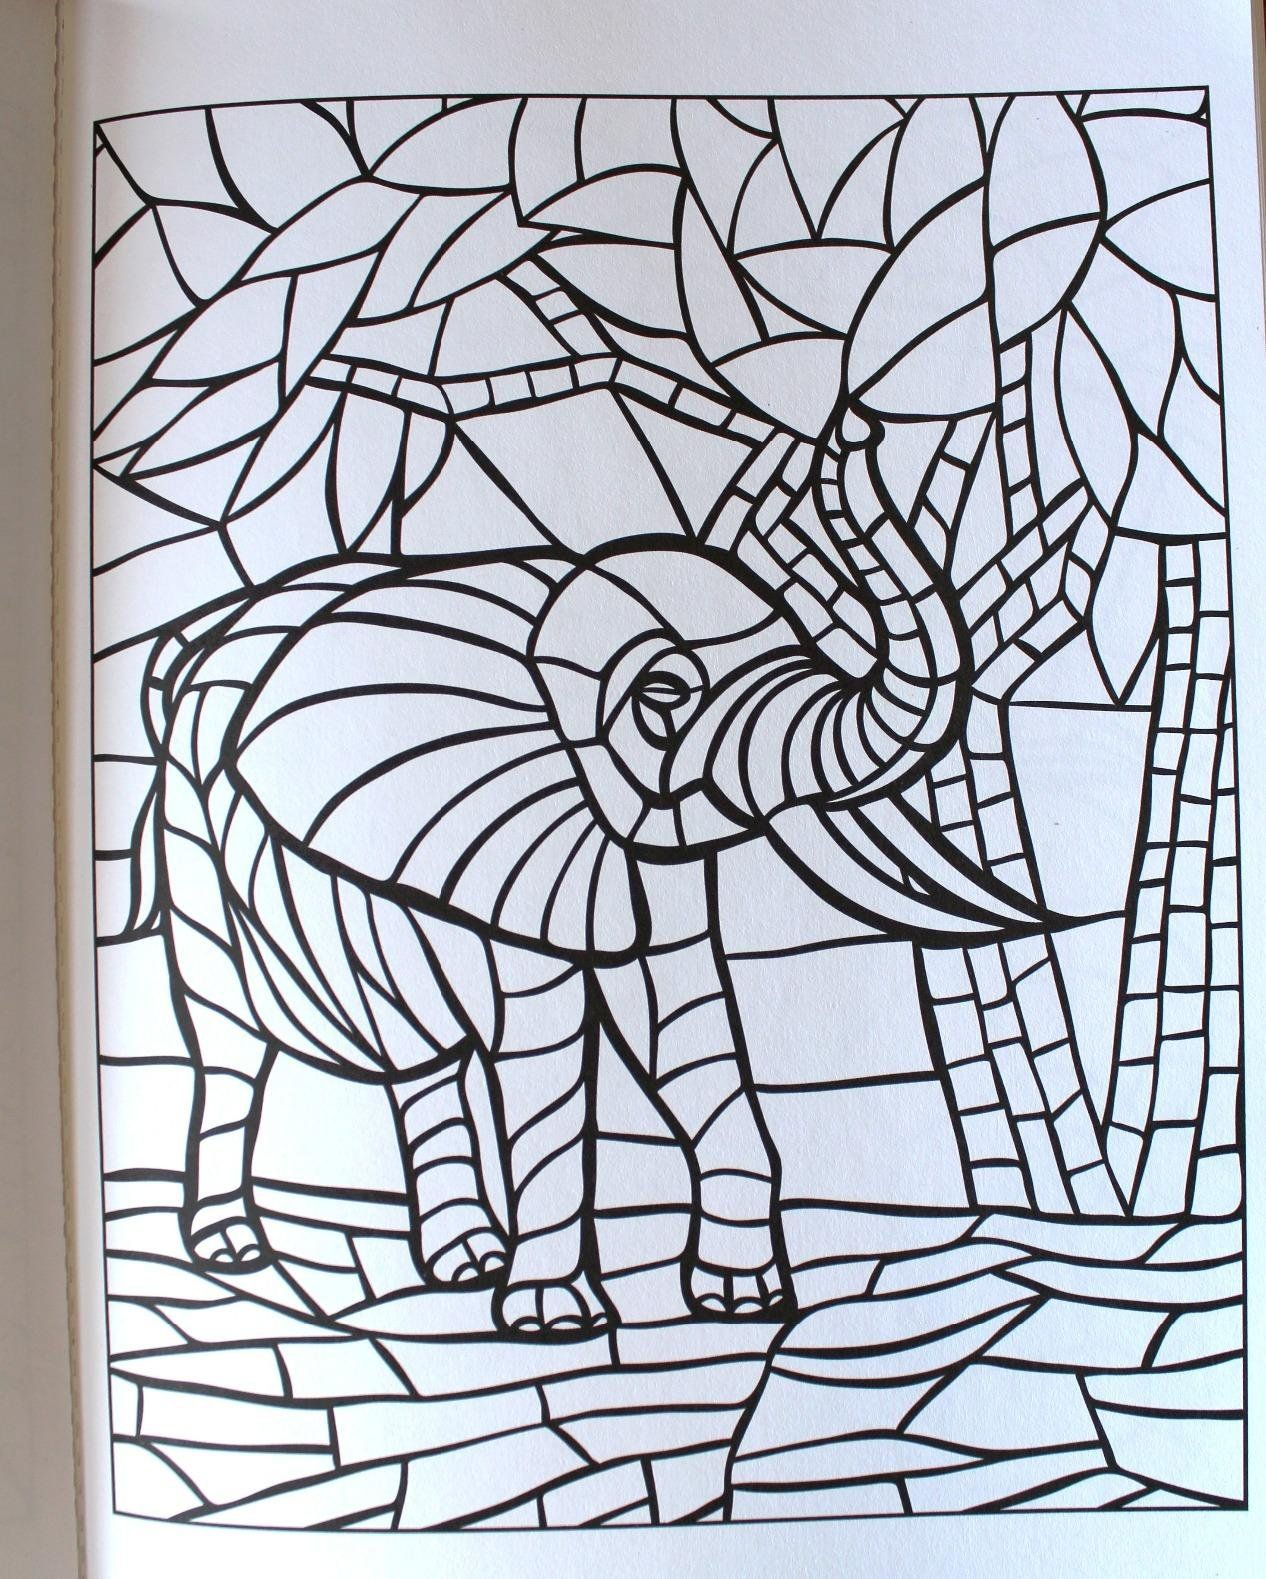 creative haven animal mosaics coloring book creative haven coloring coral reef animals coloring pages creative